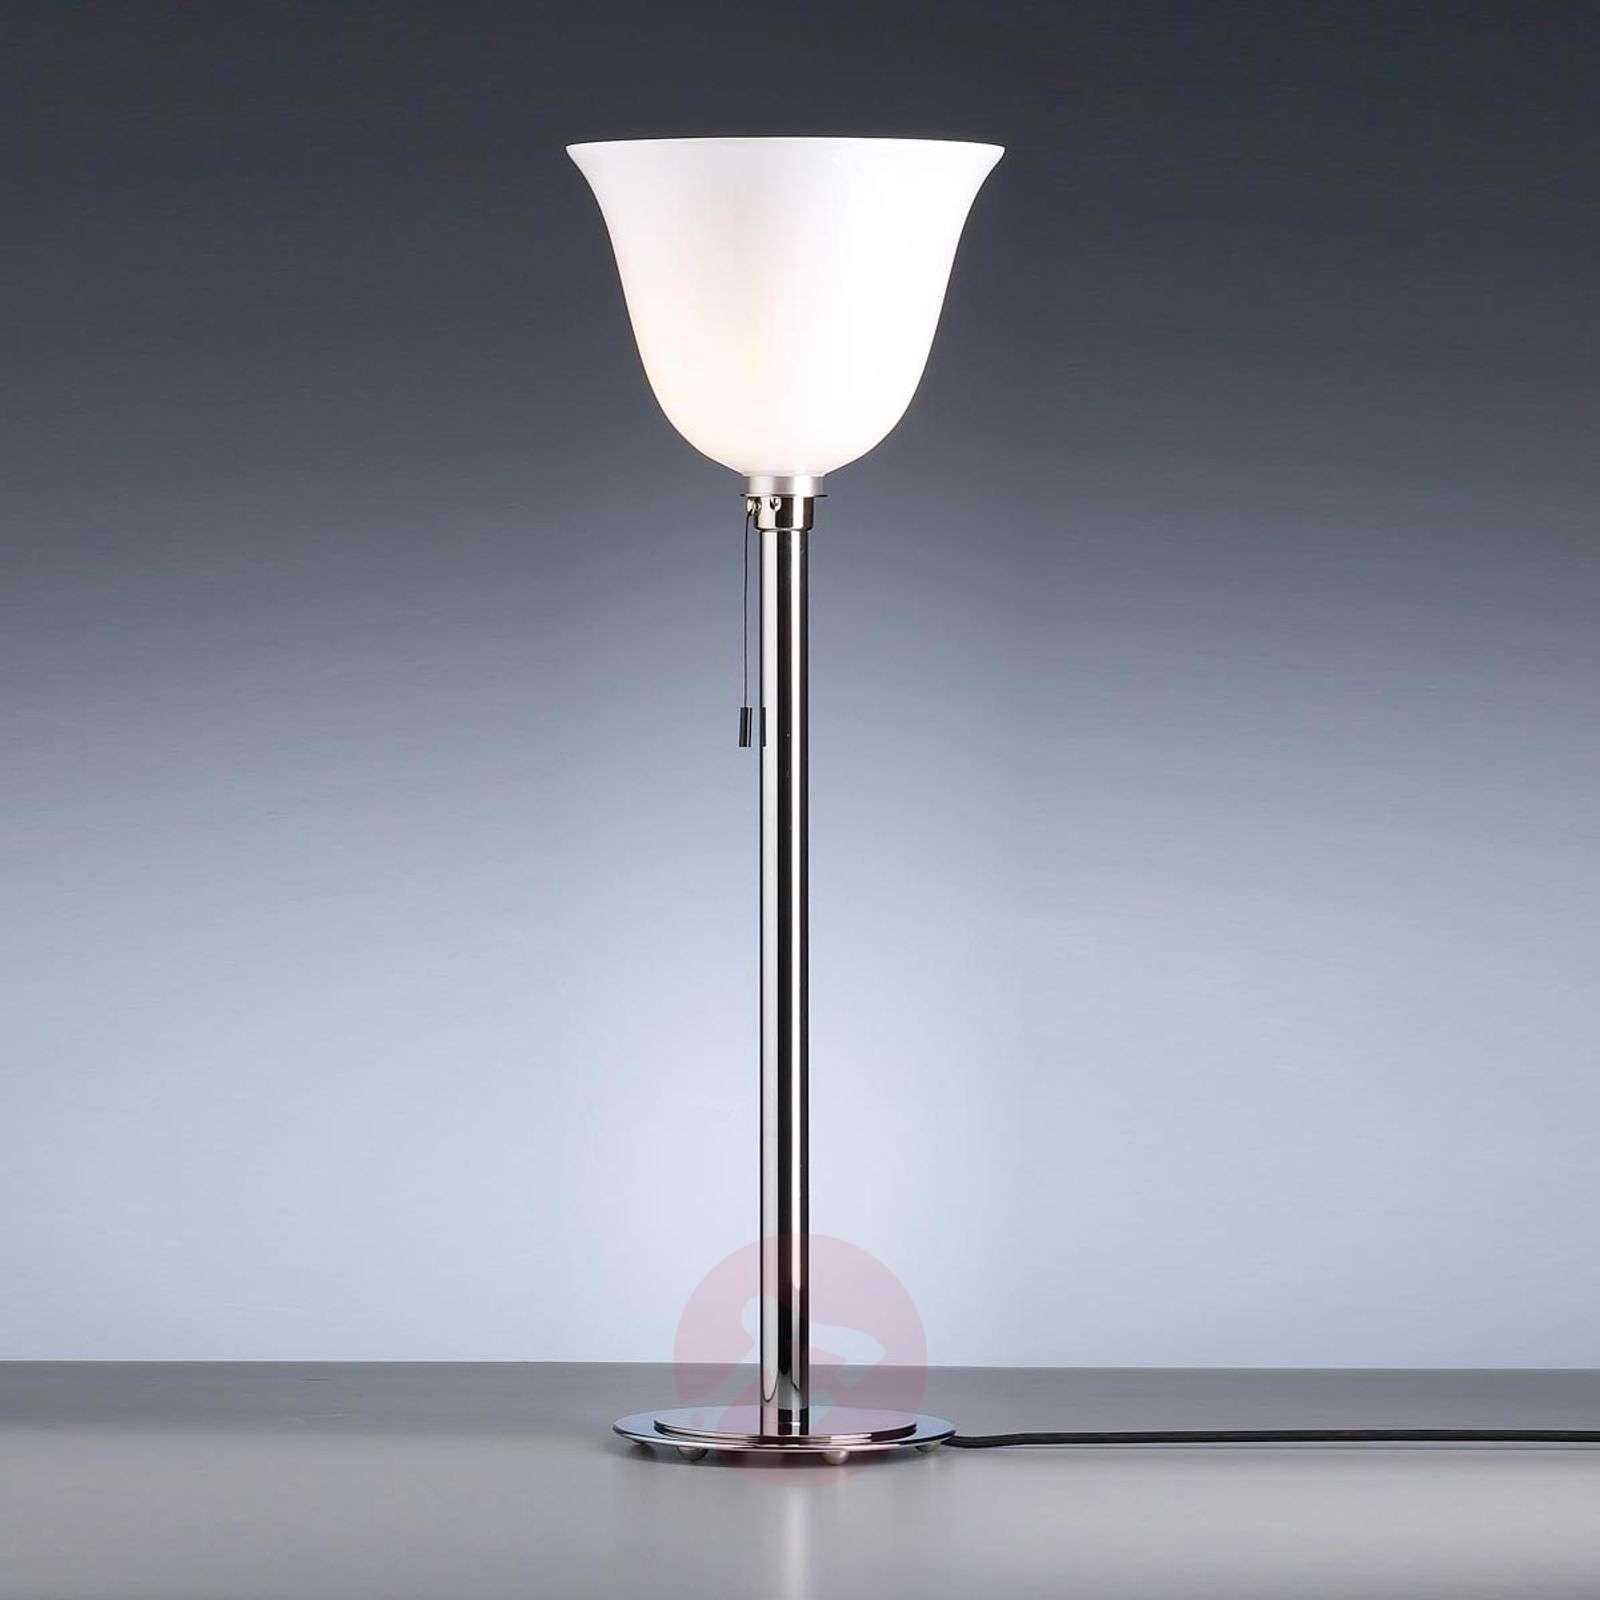 Art Deco floor lamp according to a French design-9030062-01